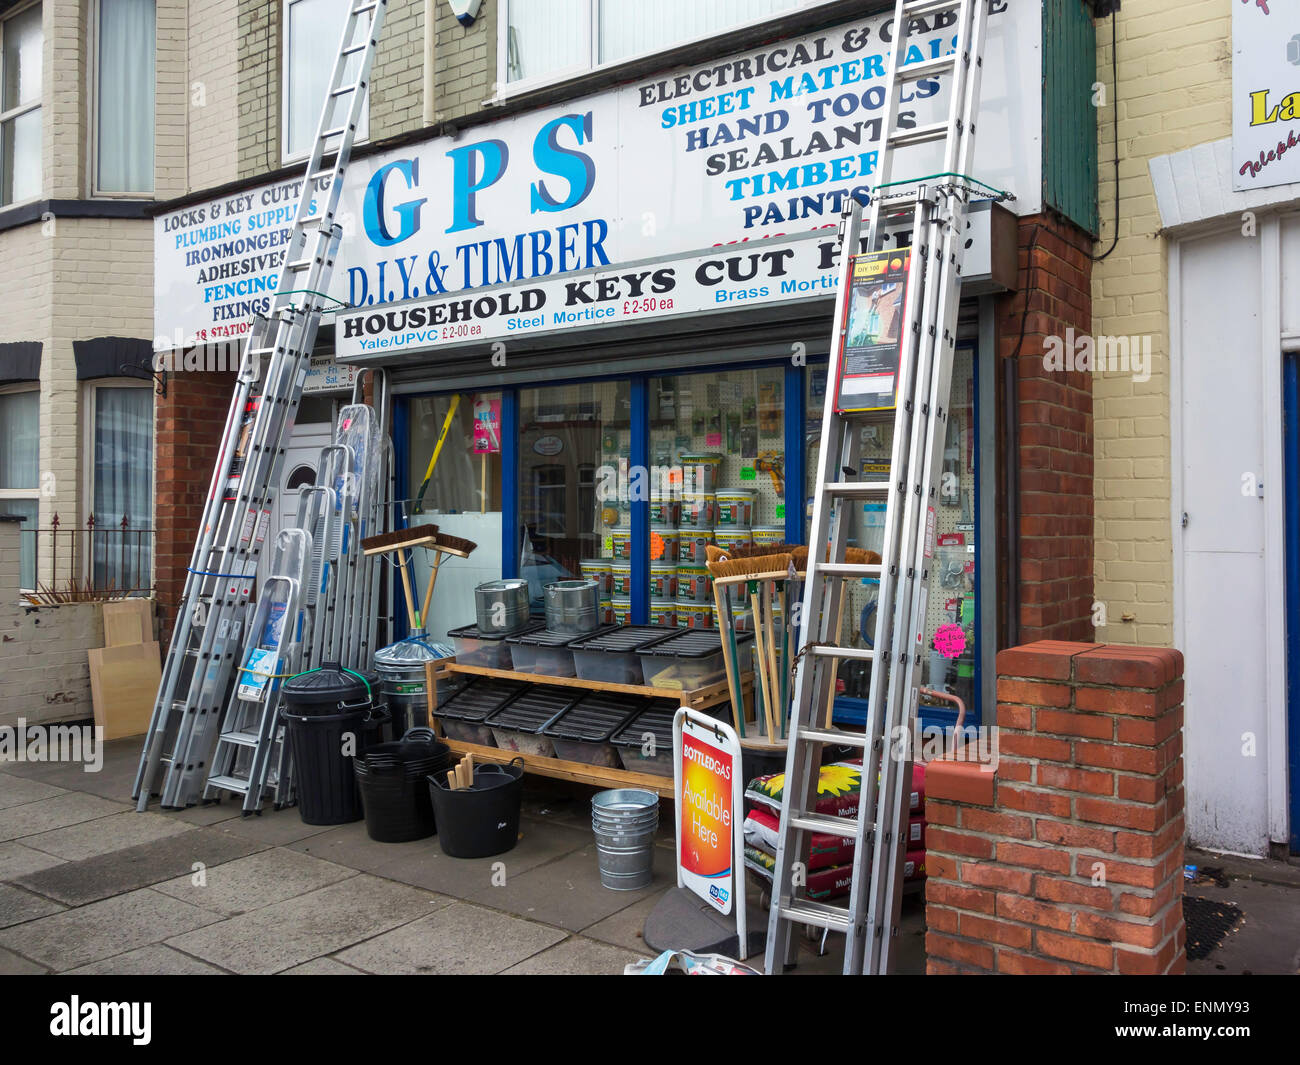 A do it yourself diy shop small business in town stock photo a do it yourself diy shop small business in town solutioingenieria Gallery